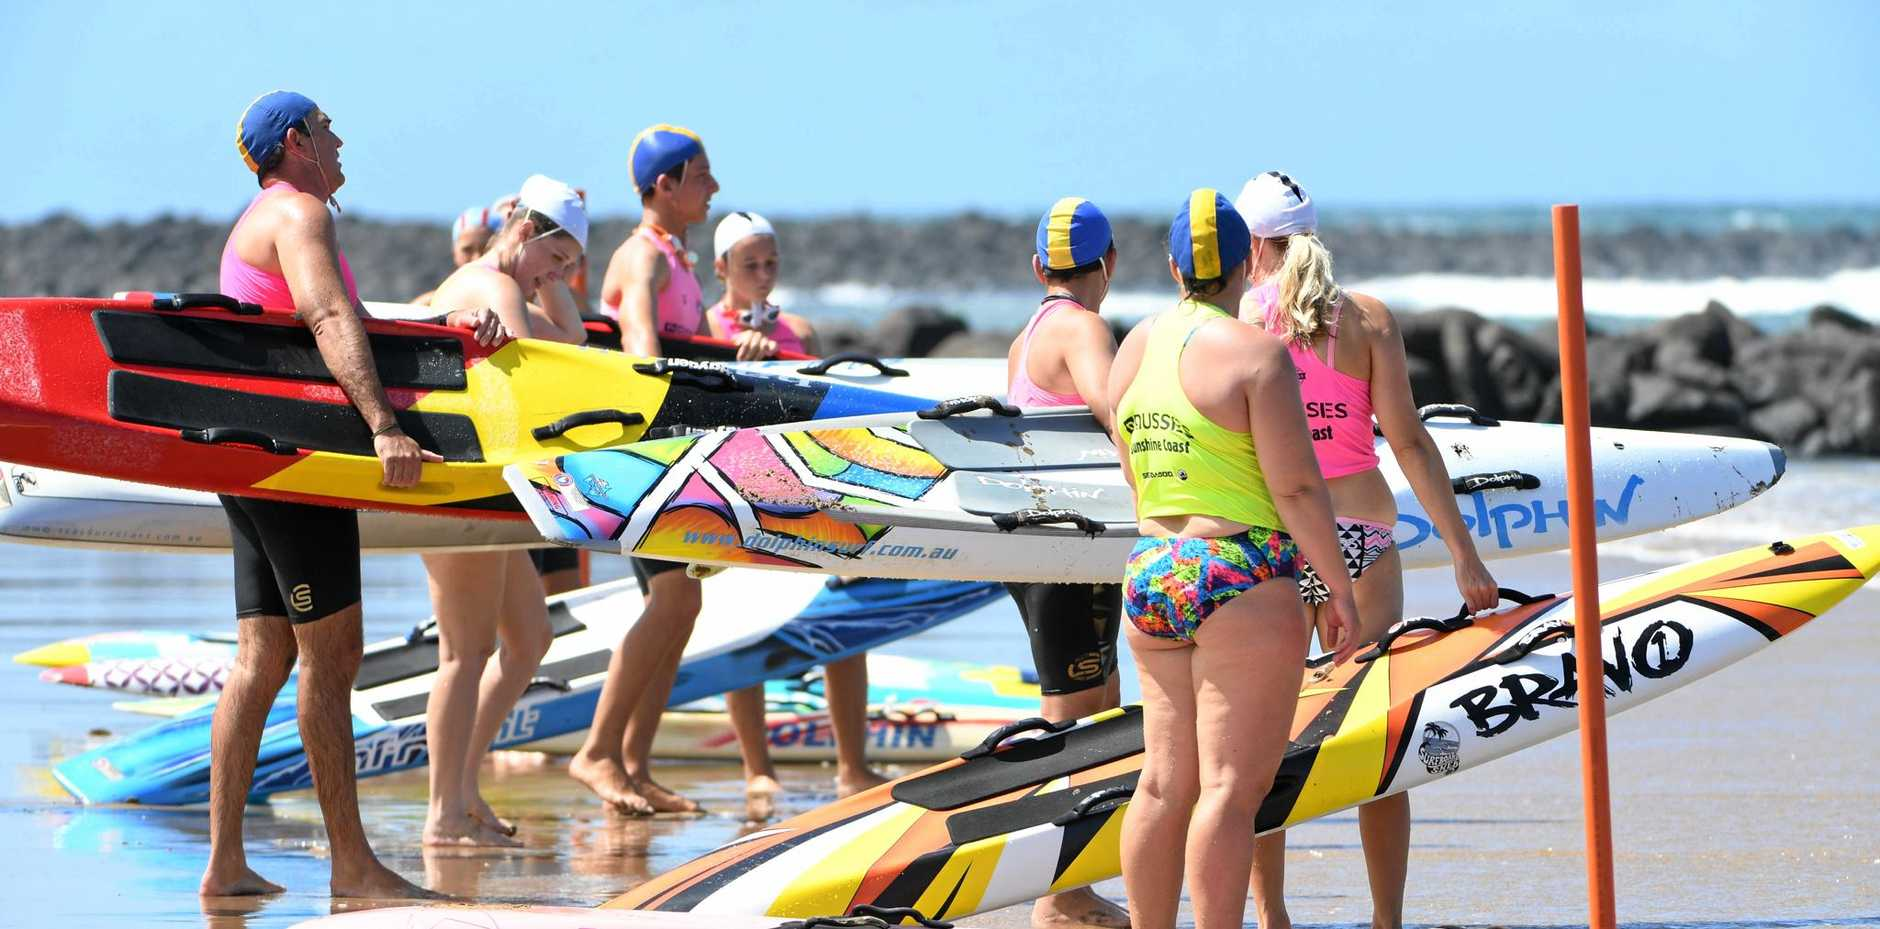 READY TO RACE: Competitors line up at a recent surf rescue event.